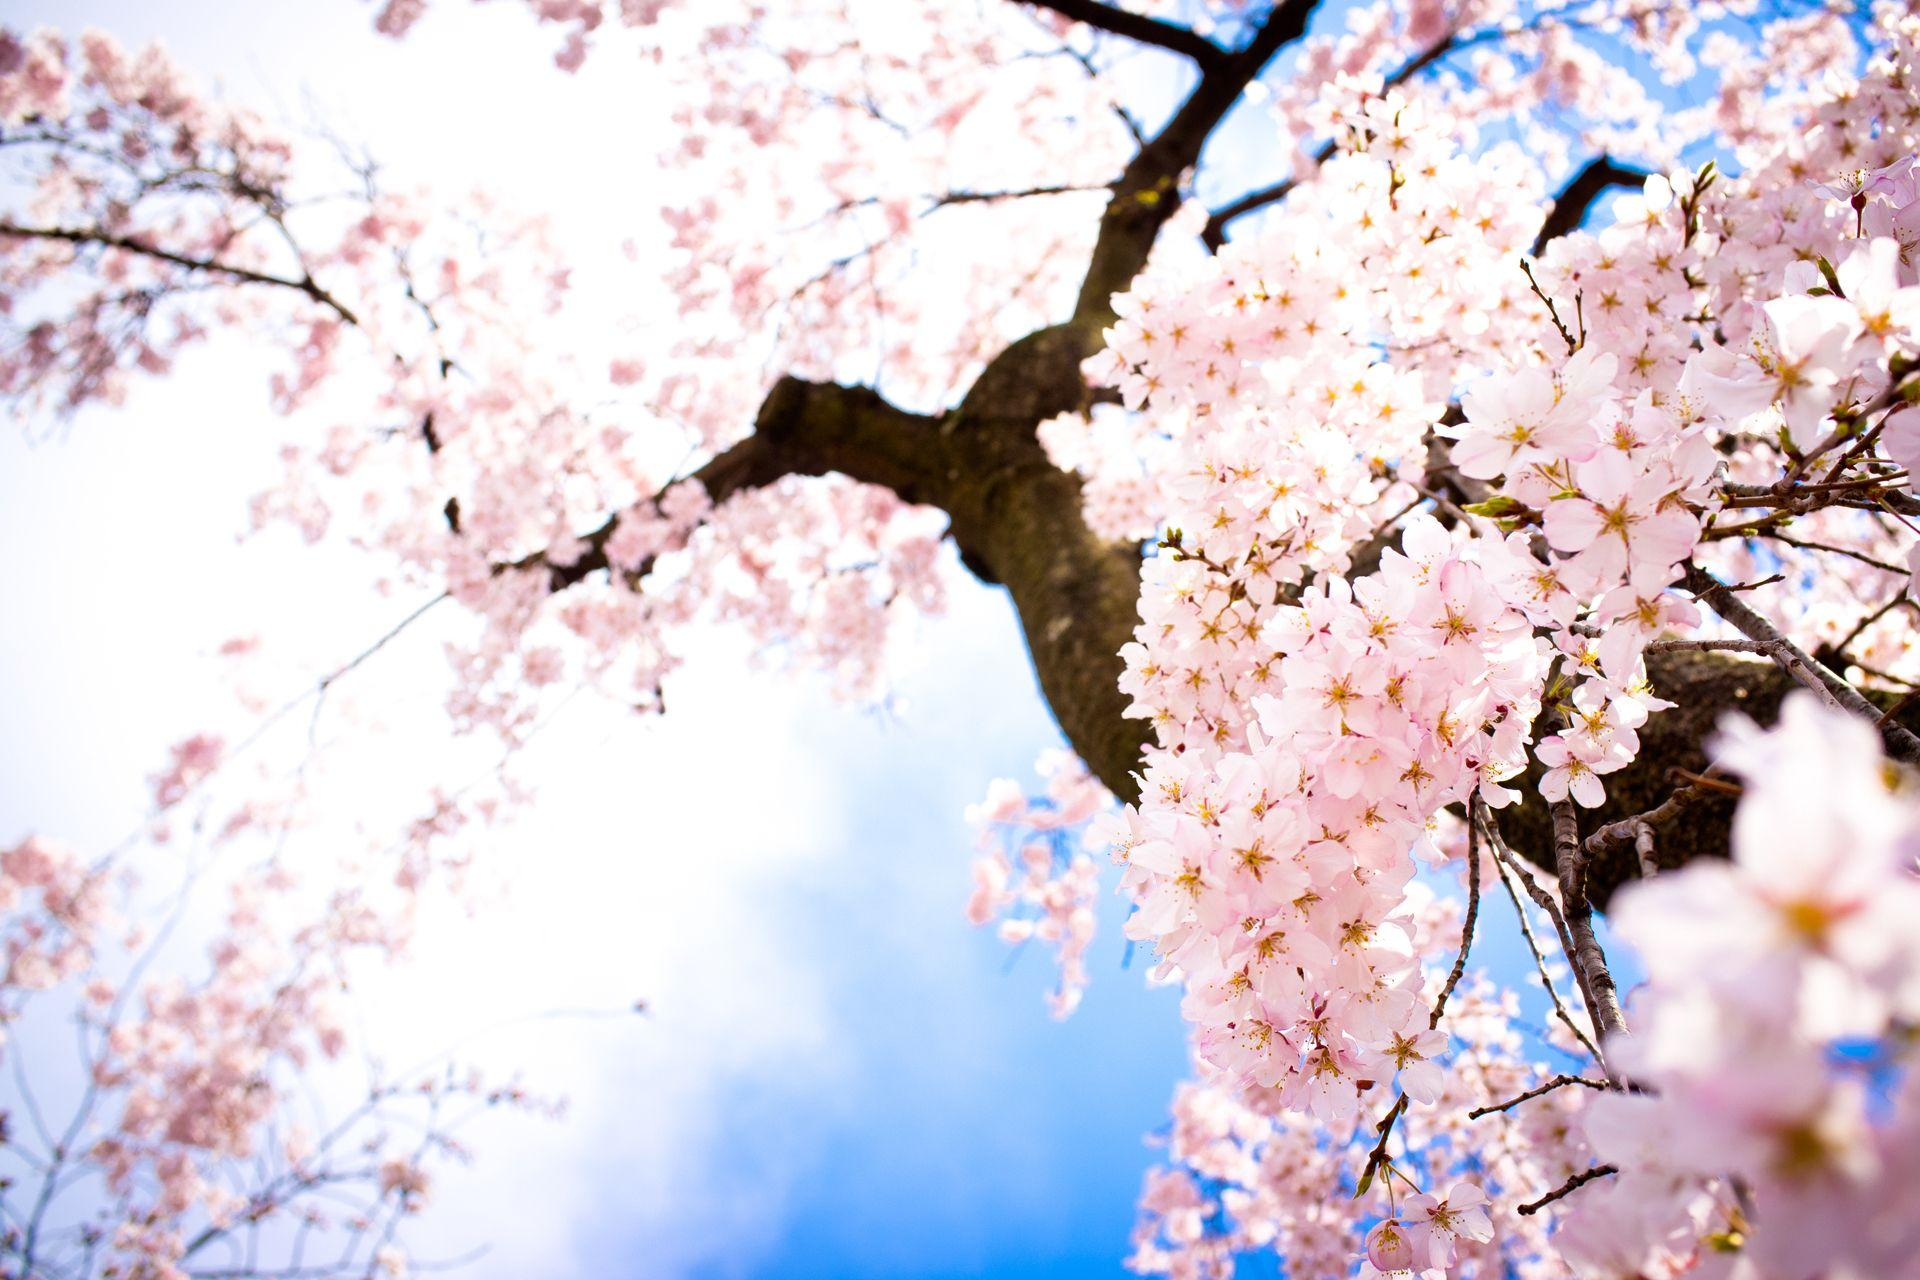 Cherry Blossom image Beautiful Cherry Blossom ♡ HD wallpapers and